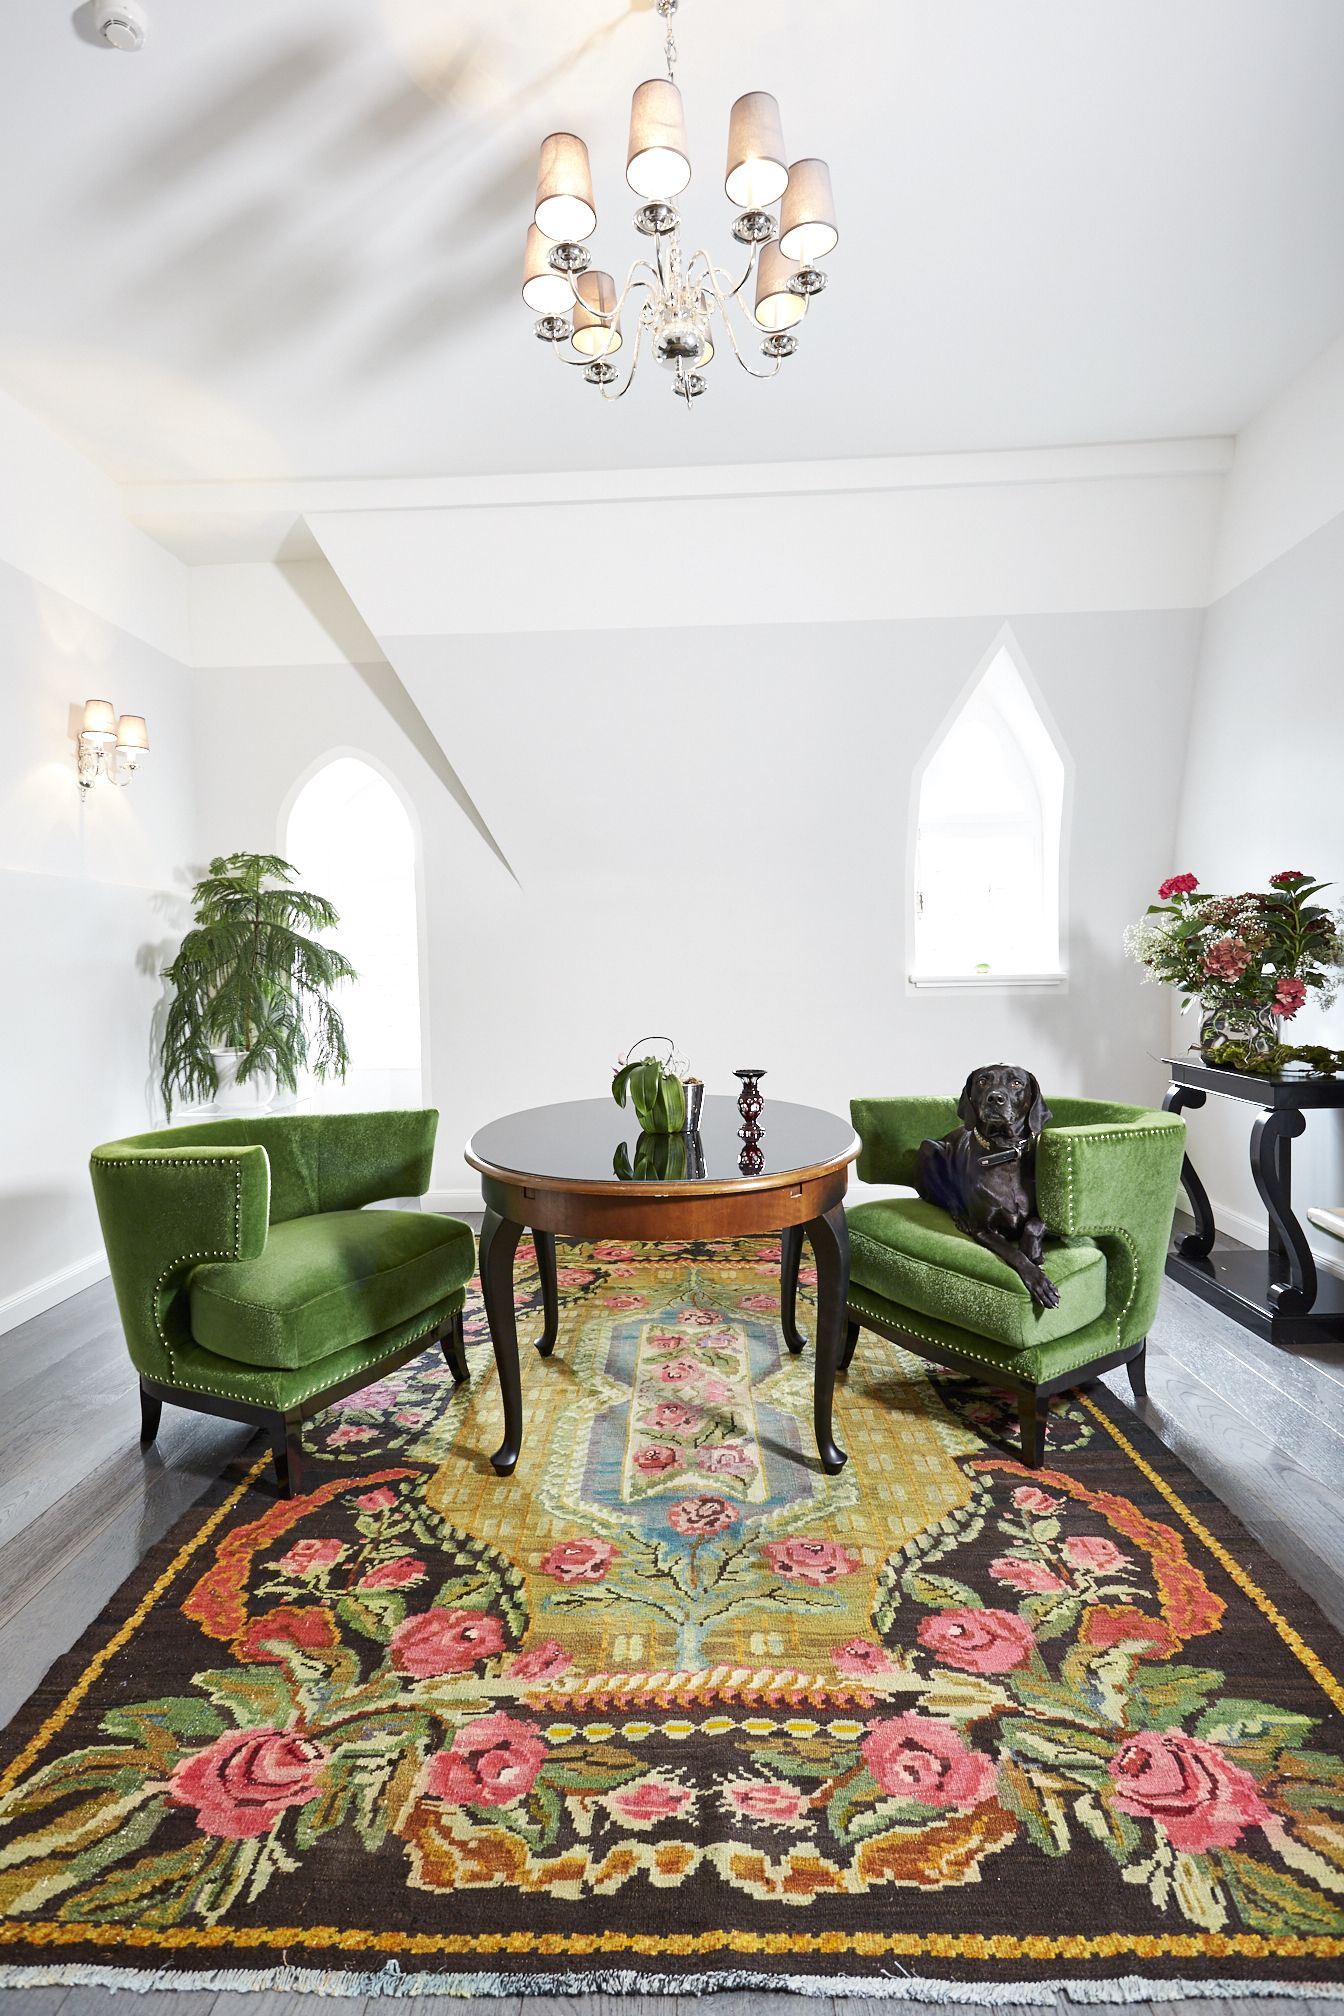 Traditional Carpet From Moldavia Art Deco Armchairs In Green Living Room Carpet Bright Decor #traditional #living #room #rugs